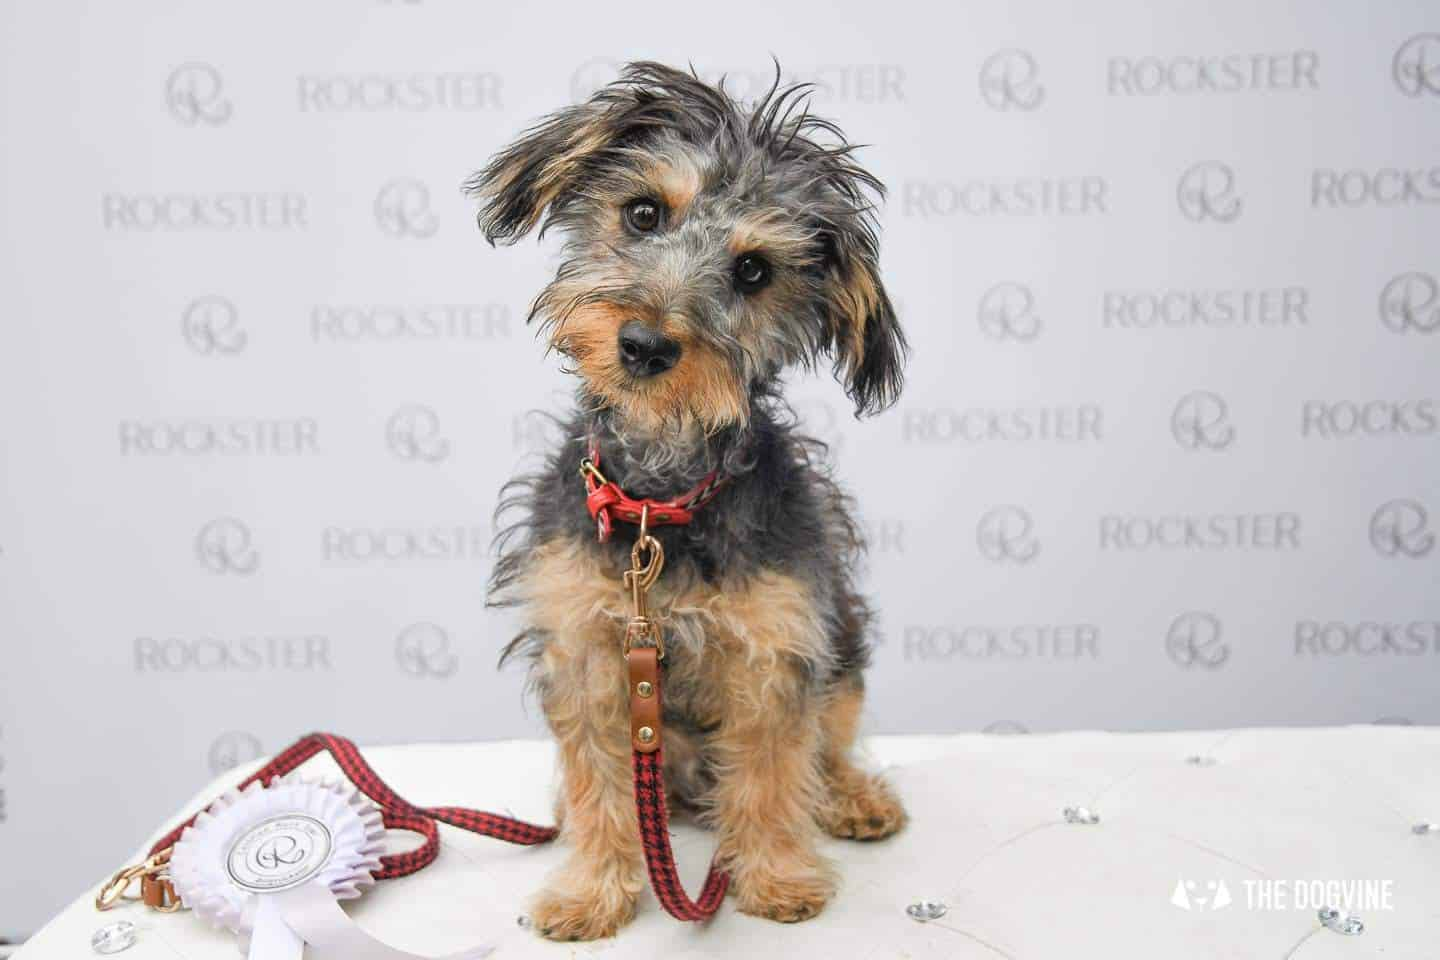 Crossbreeds & Rescue Dogs in the Spotlight at the Crossbreed Café 19